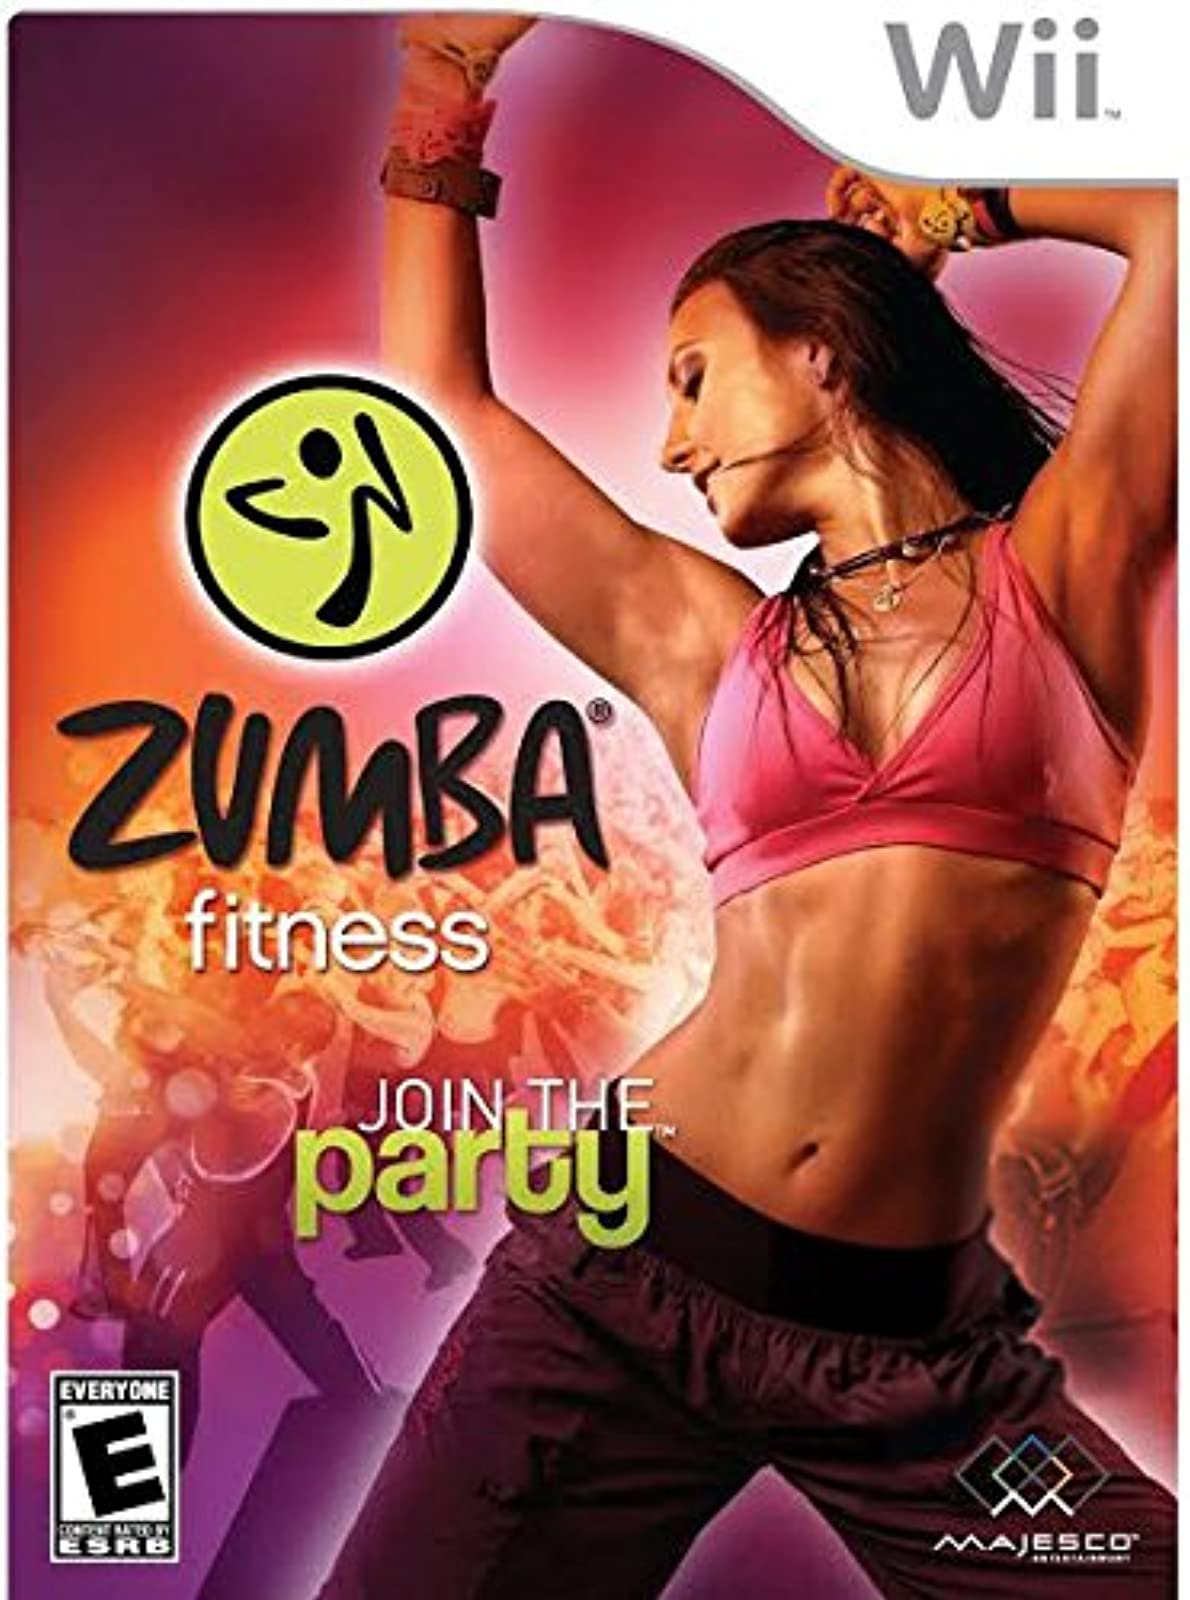 Zumba Fitness Game For Wii and Wii U